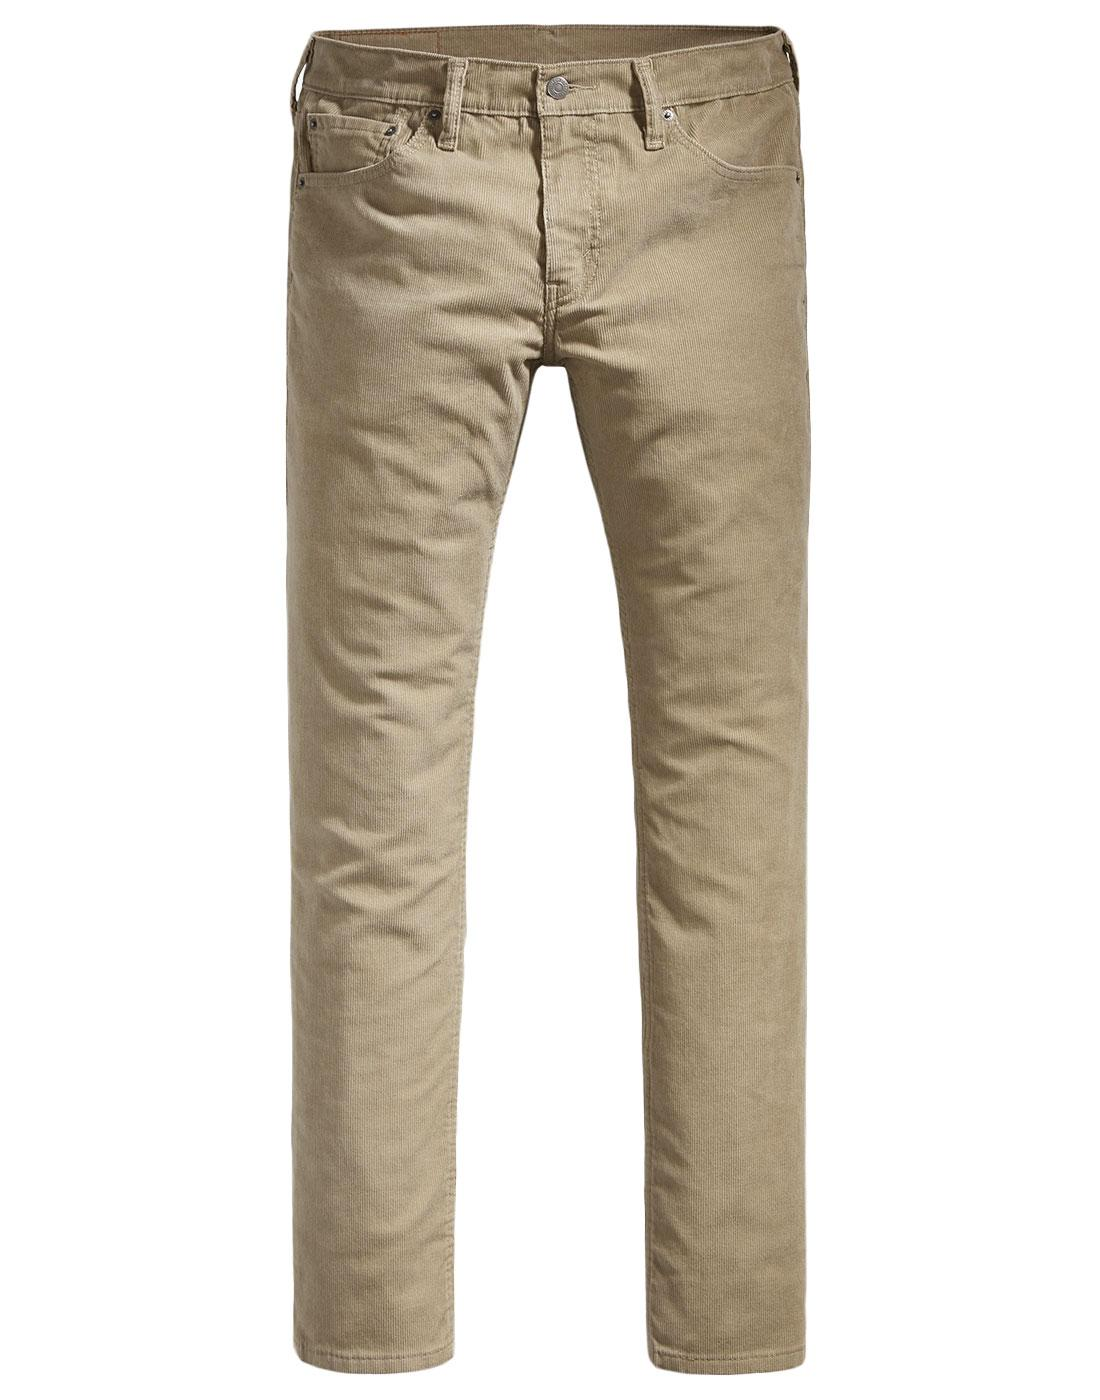 840b0ae2c29 LEVI'S® 511 Men's Retro Mod 1960s Mens Slim Fit Cord Jeans Sand